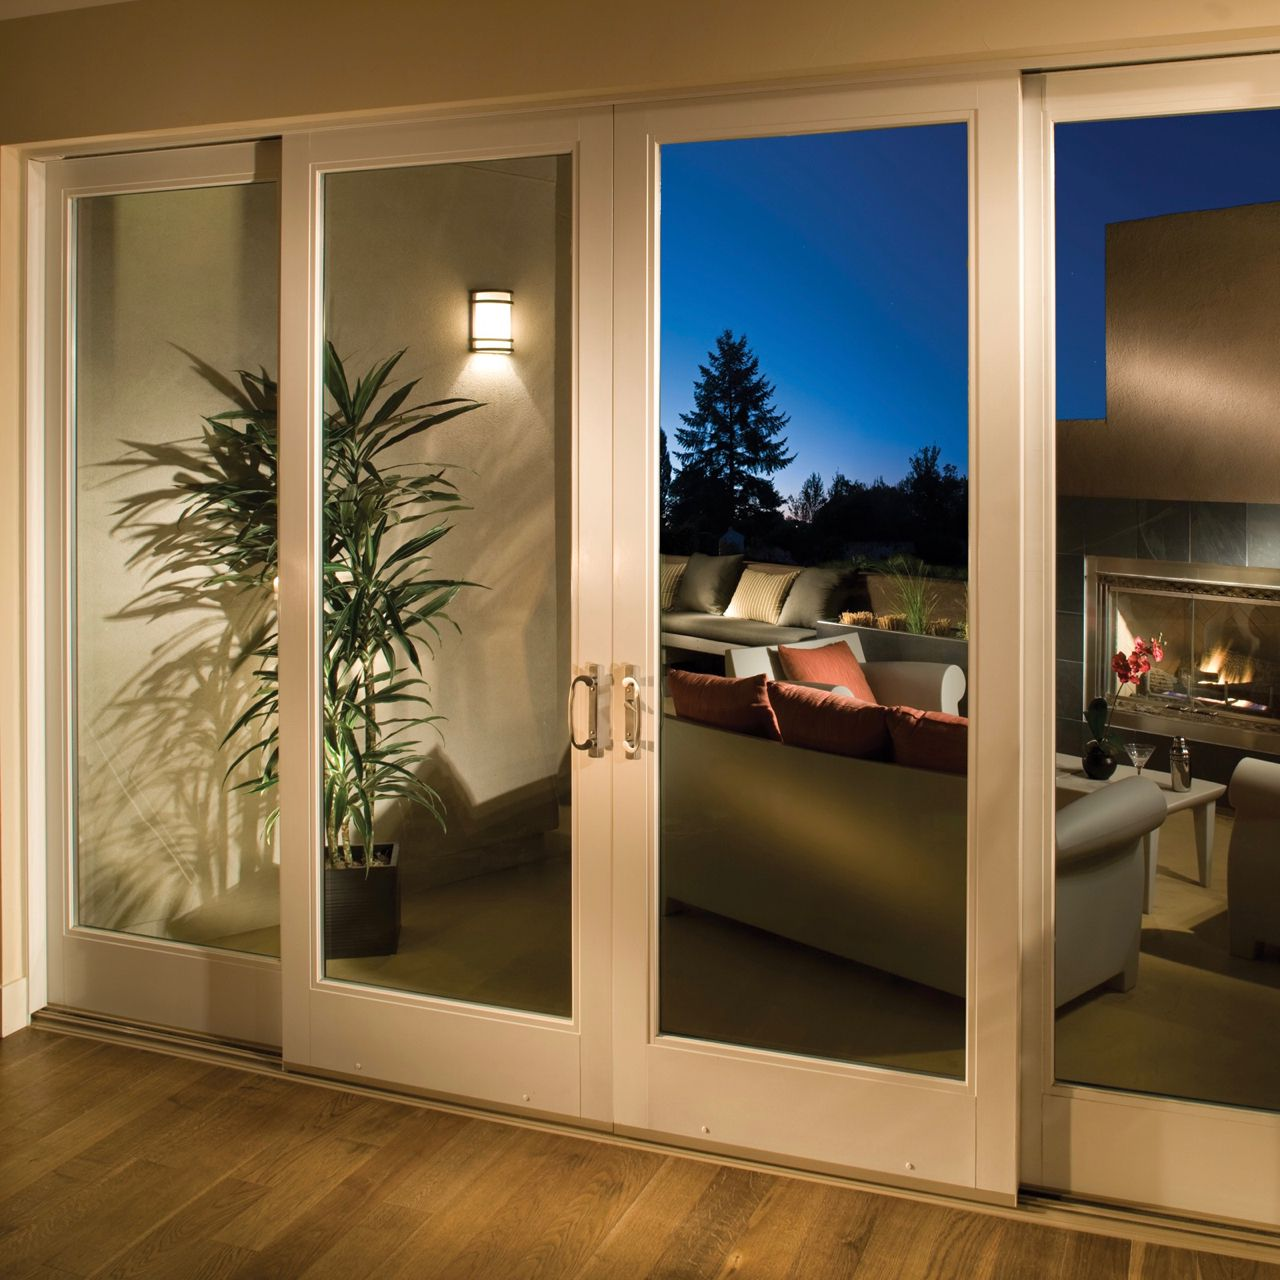 Masonite patio door